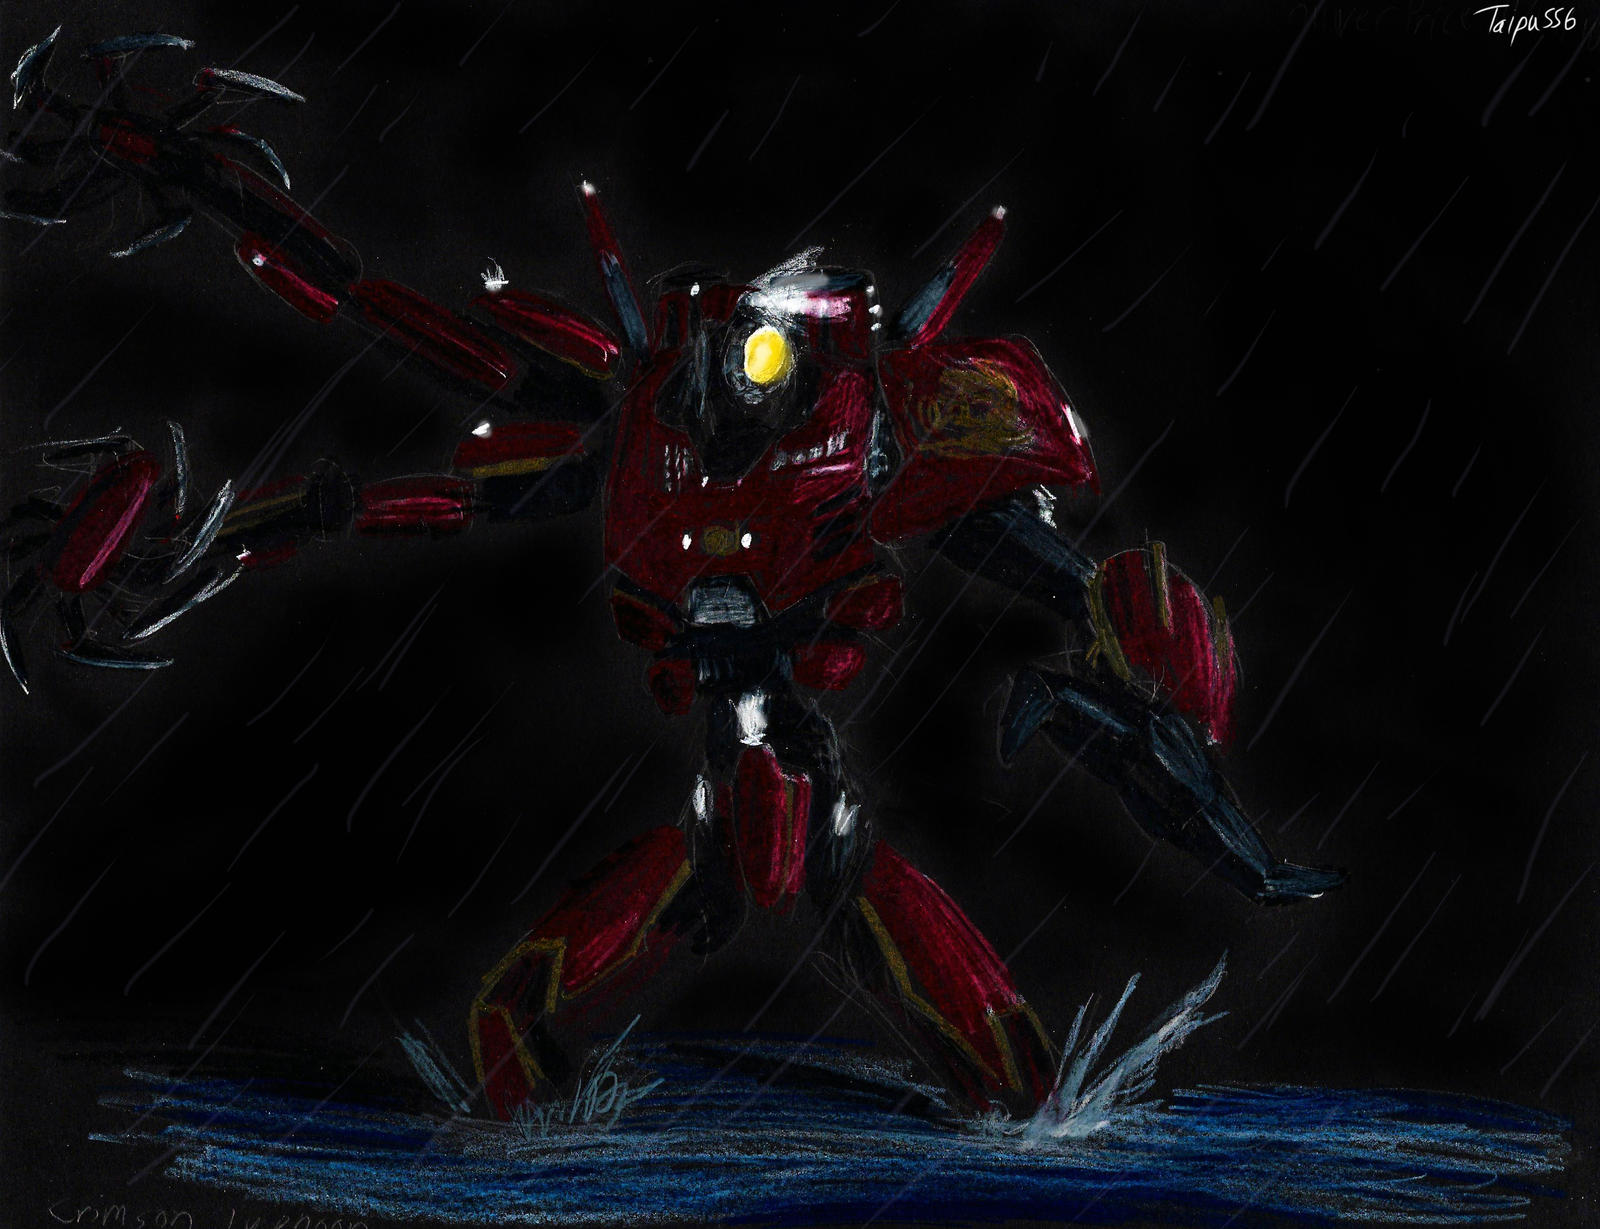 Crimson Typhoon by Taipu556 on DeviantArt